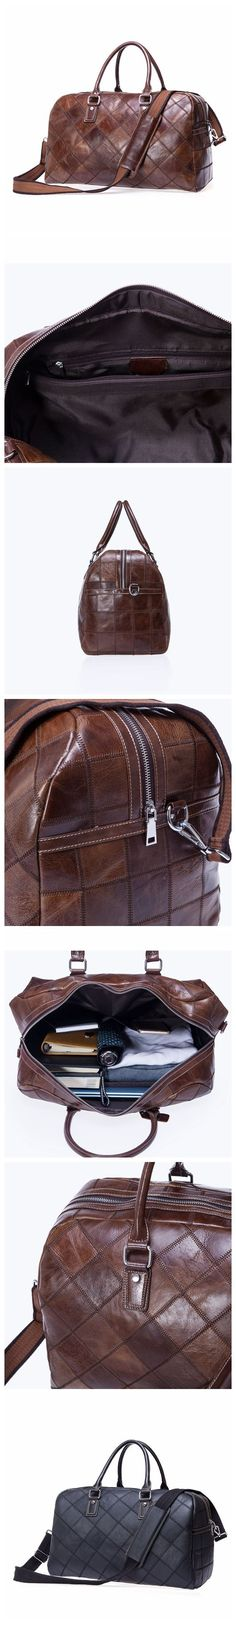 NEW ARRIVAL Top Grain Handbag, Large Capacity Duffel Bag, Leather Travel Bag, Luggage Bag 12023